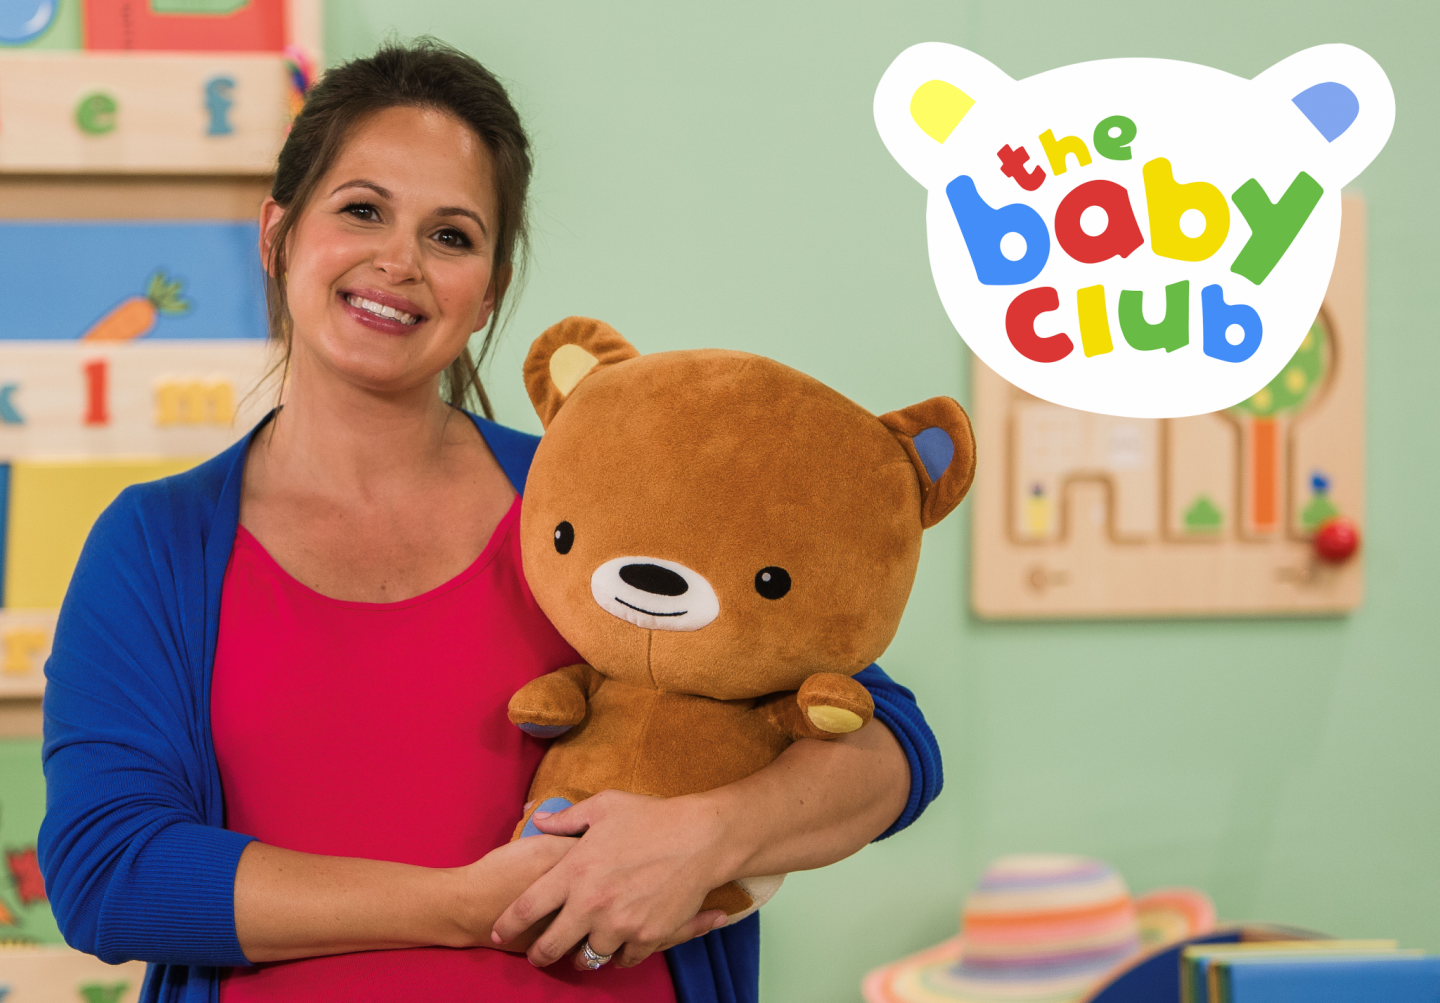 Giovanna Fletcher, The baby Club, Cbeebies, Baby Club, BBC, dad blog, uk dad blog, dadbloguk.com, dadbloguk, school run dad, sahd, wahd